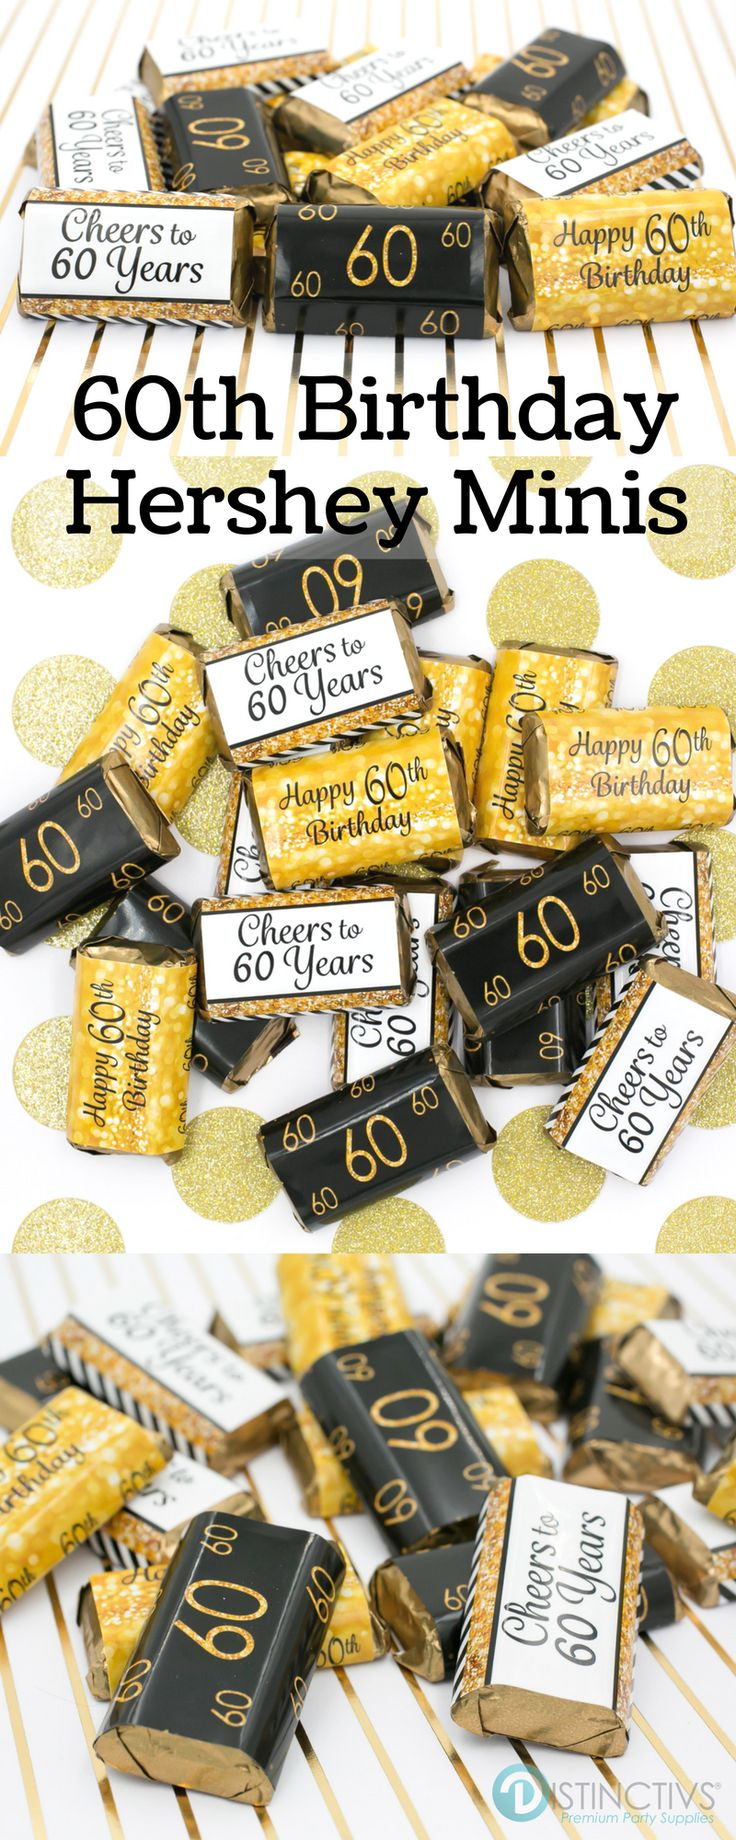 Black and Gold stickers that are designed to wrap perfectly around Hershey's® Miniature Bars!  #60thbirthday #60thbirthdayideas